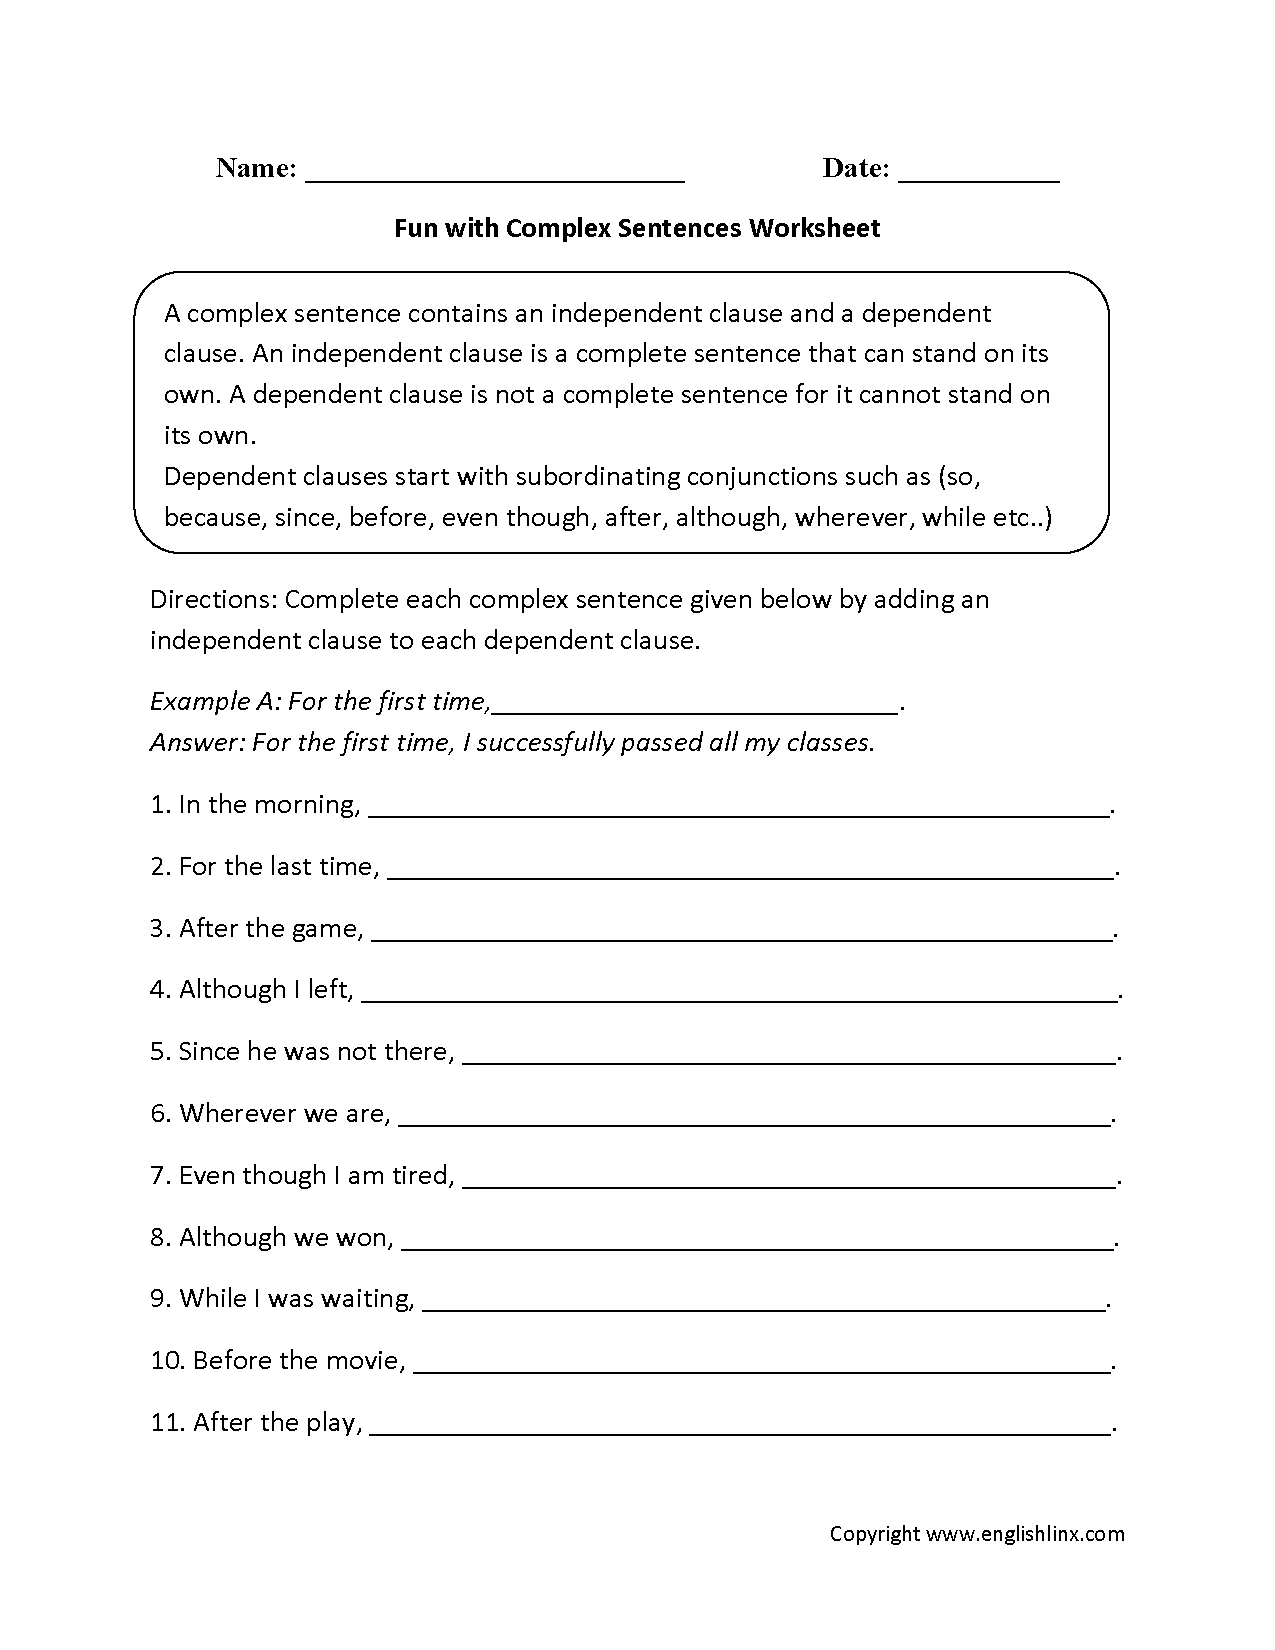 hight resolution of Complex Sentences Worksheets   Fun with Complex Sentences Worksheet    Complex sentences worksheets